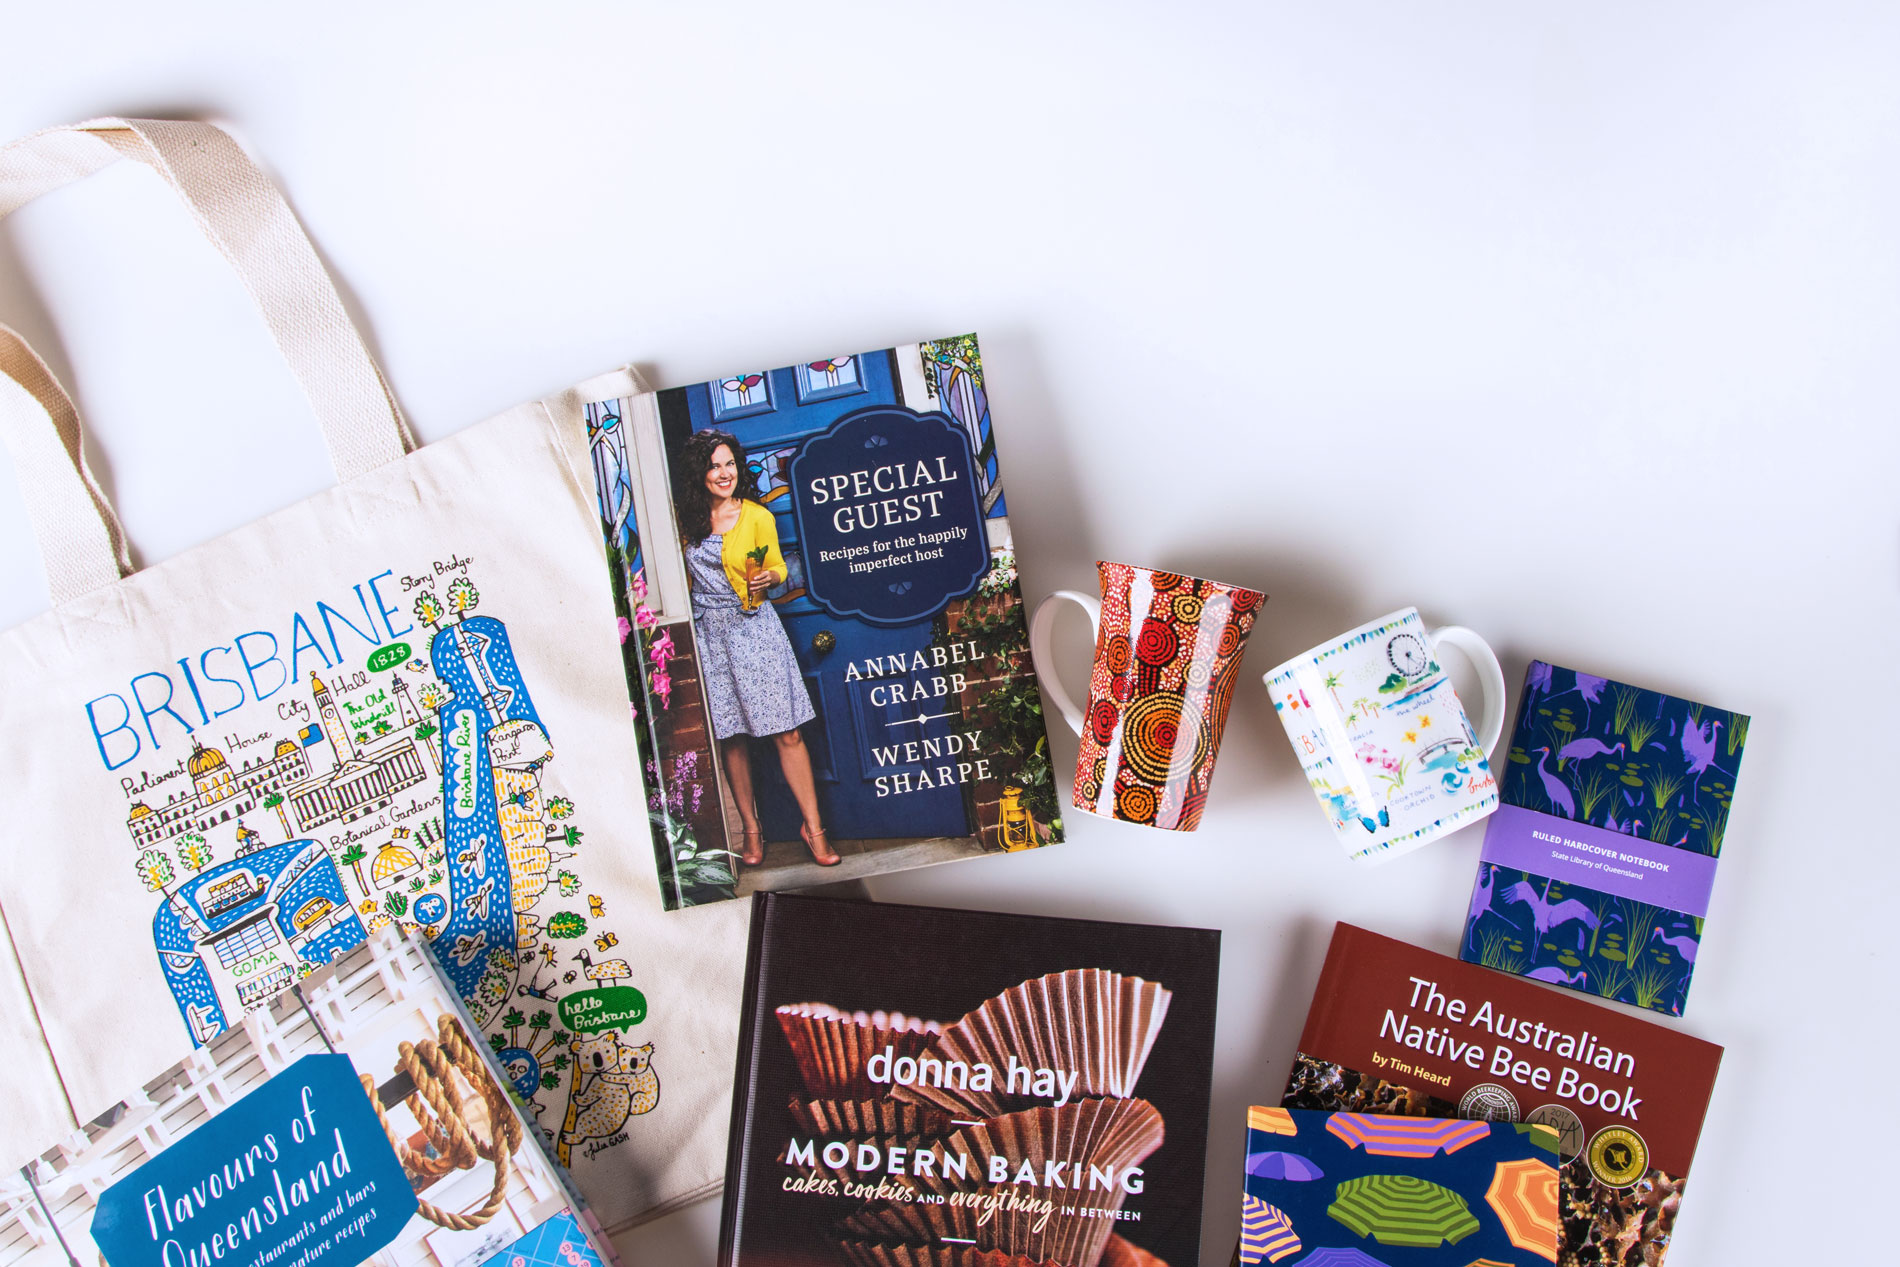 Flat lay of the library shop products